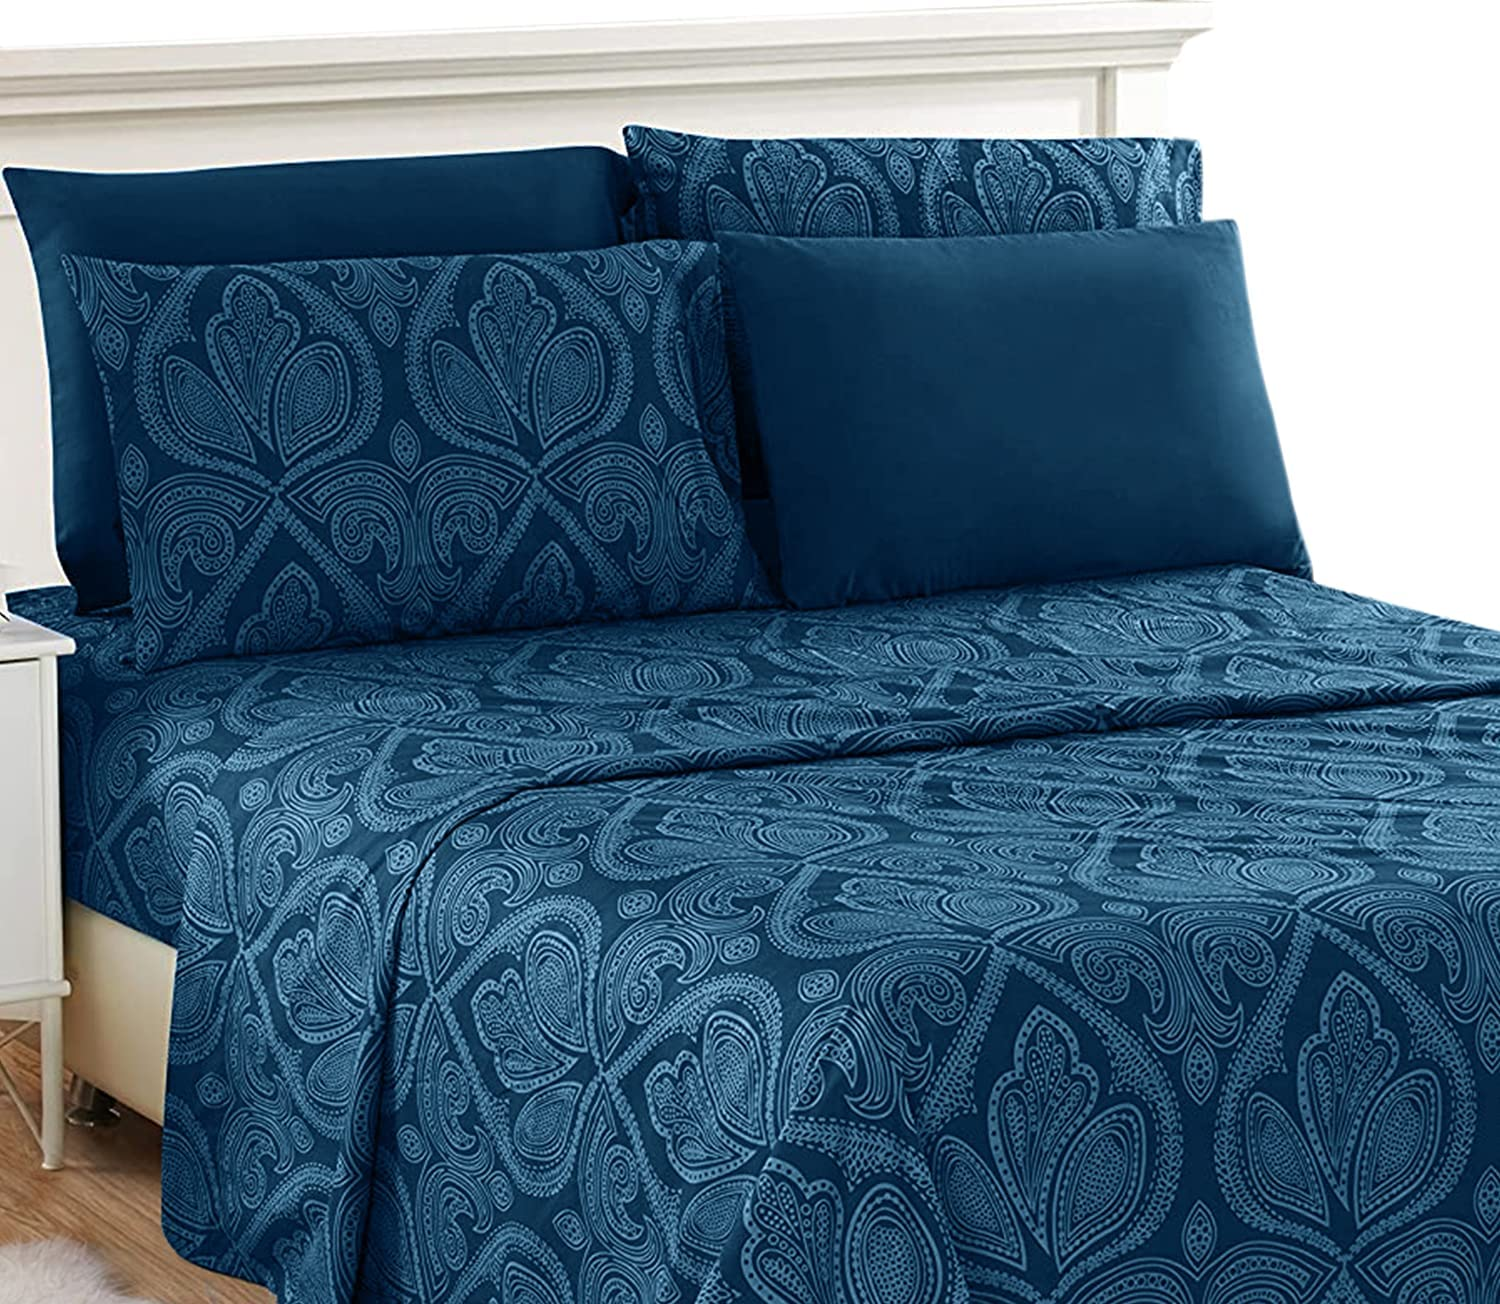 Lux Decor Collection King Bed Sheets Set - King Sheets Brushed Microfiber 1800 Thread Count Bedding - Wrinkle, Stain, Fade Resistant - Deep Pocket King Size Sheets Set - 6 PC (King, Paisley Navy Blue)